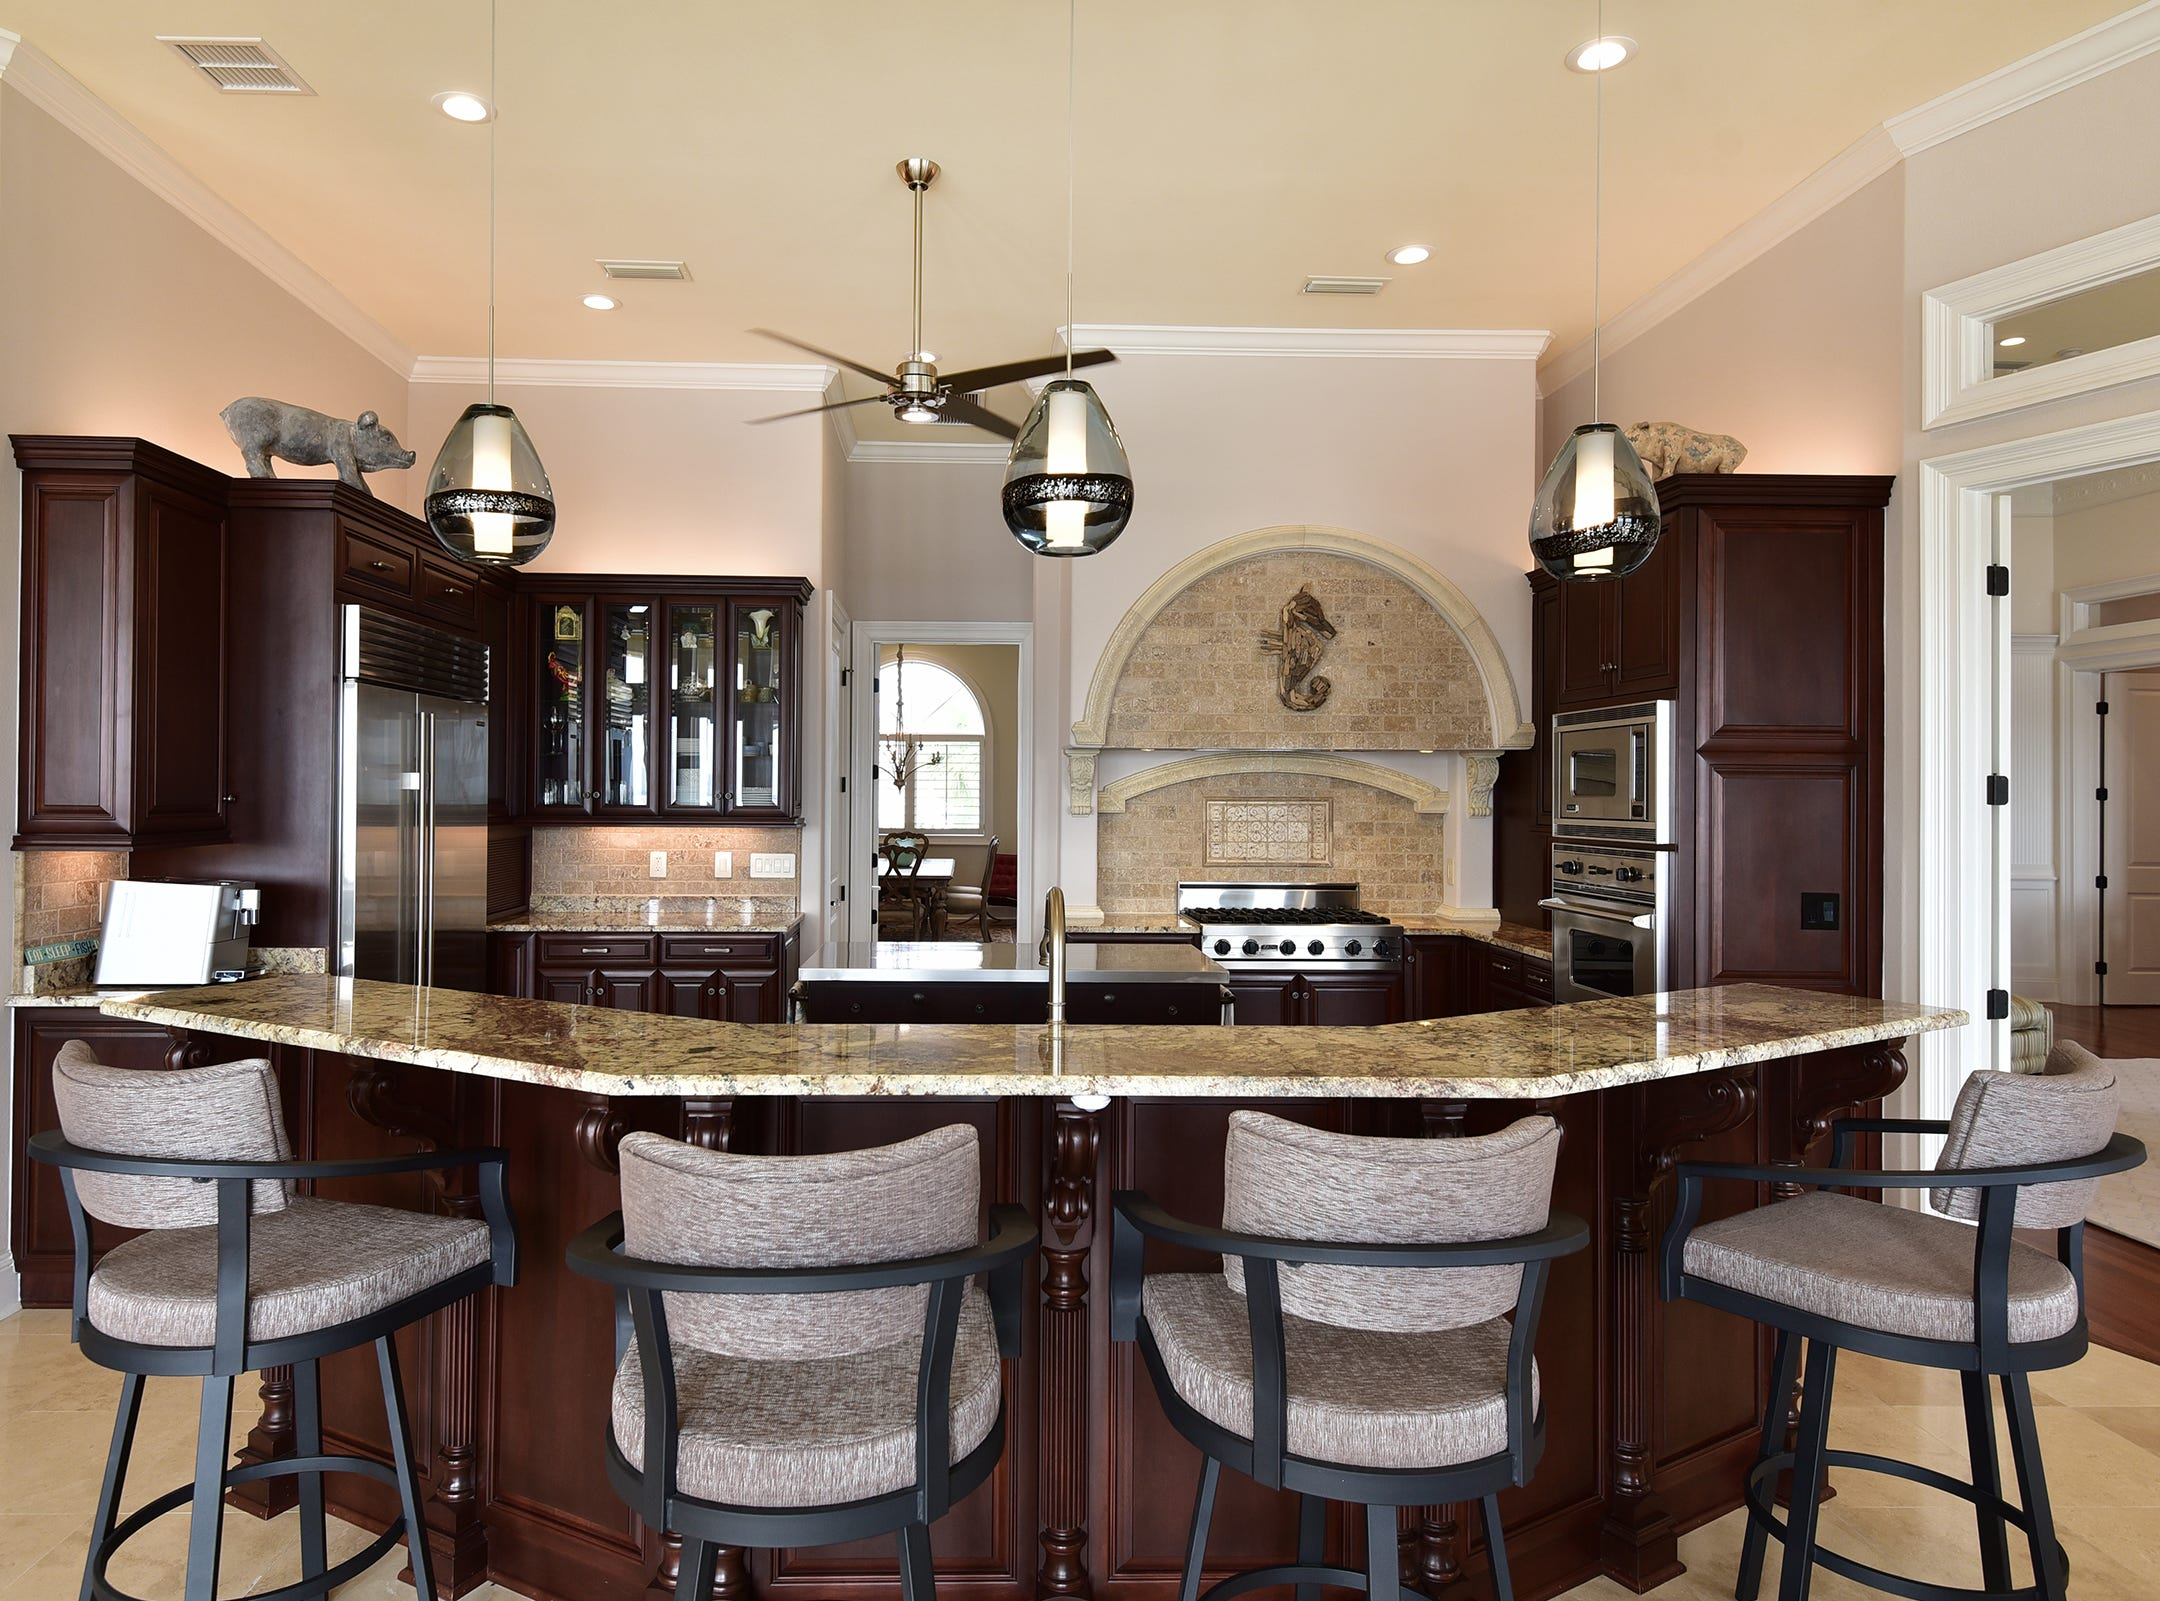 5 Colley CoveThe kitchen includes bar seating.